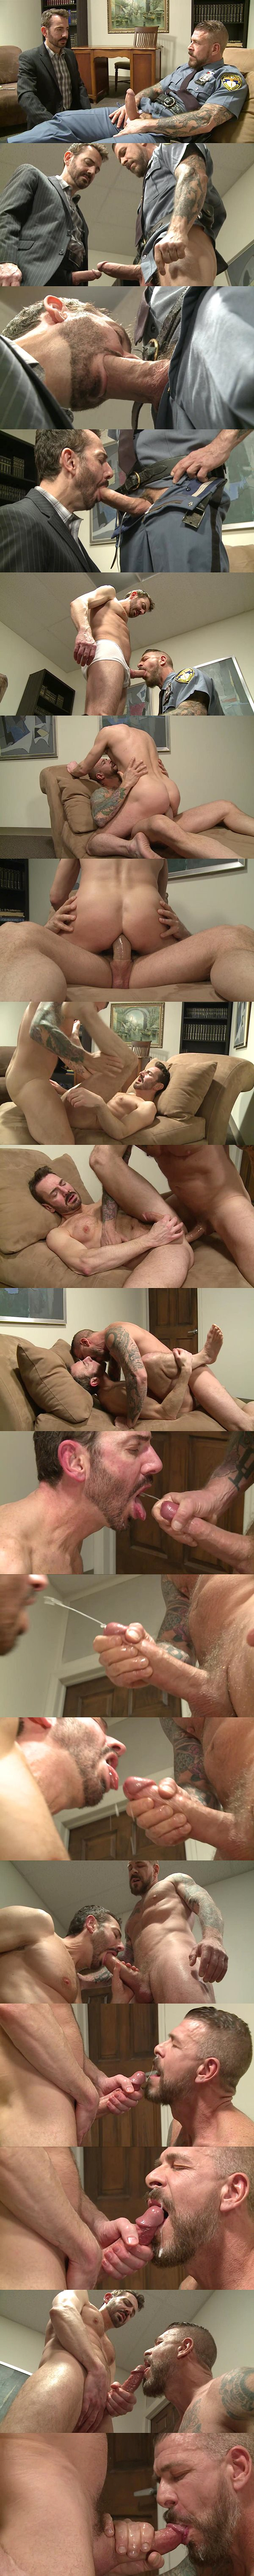 Horse hung Rocco Steele fucks Bryan Slater in Joe Gage Sex Files Vol. #19 It's a Job at Raydragon 02